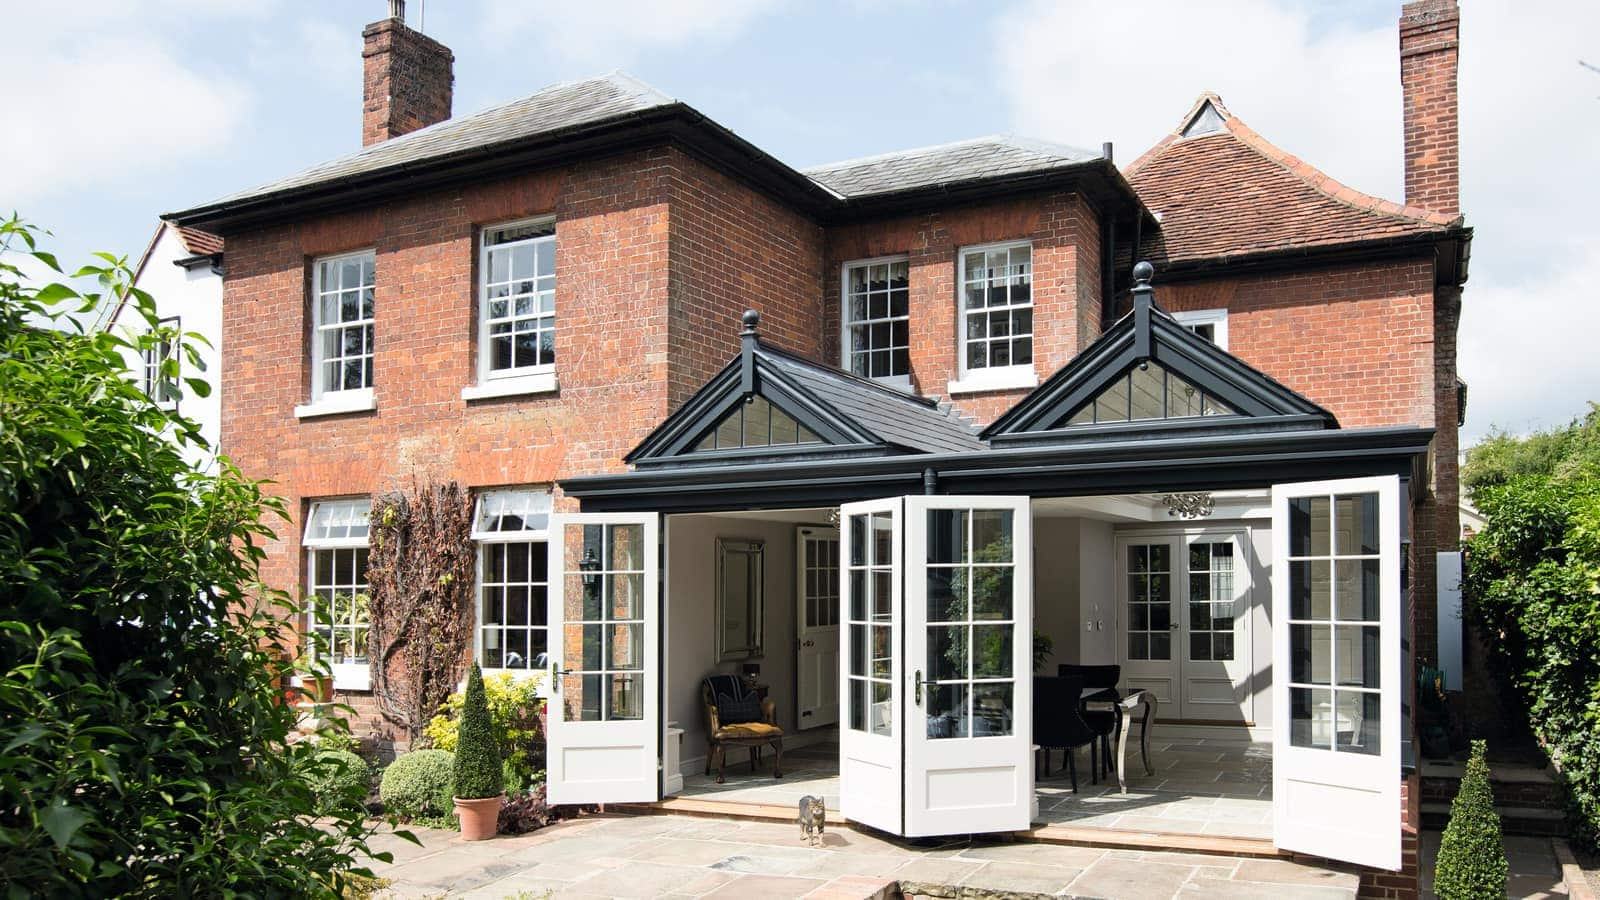 Period vicarage traditionally designed garden room featuring two vertically glazed gable ends